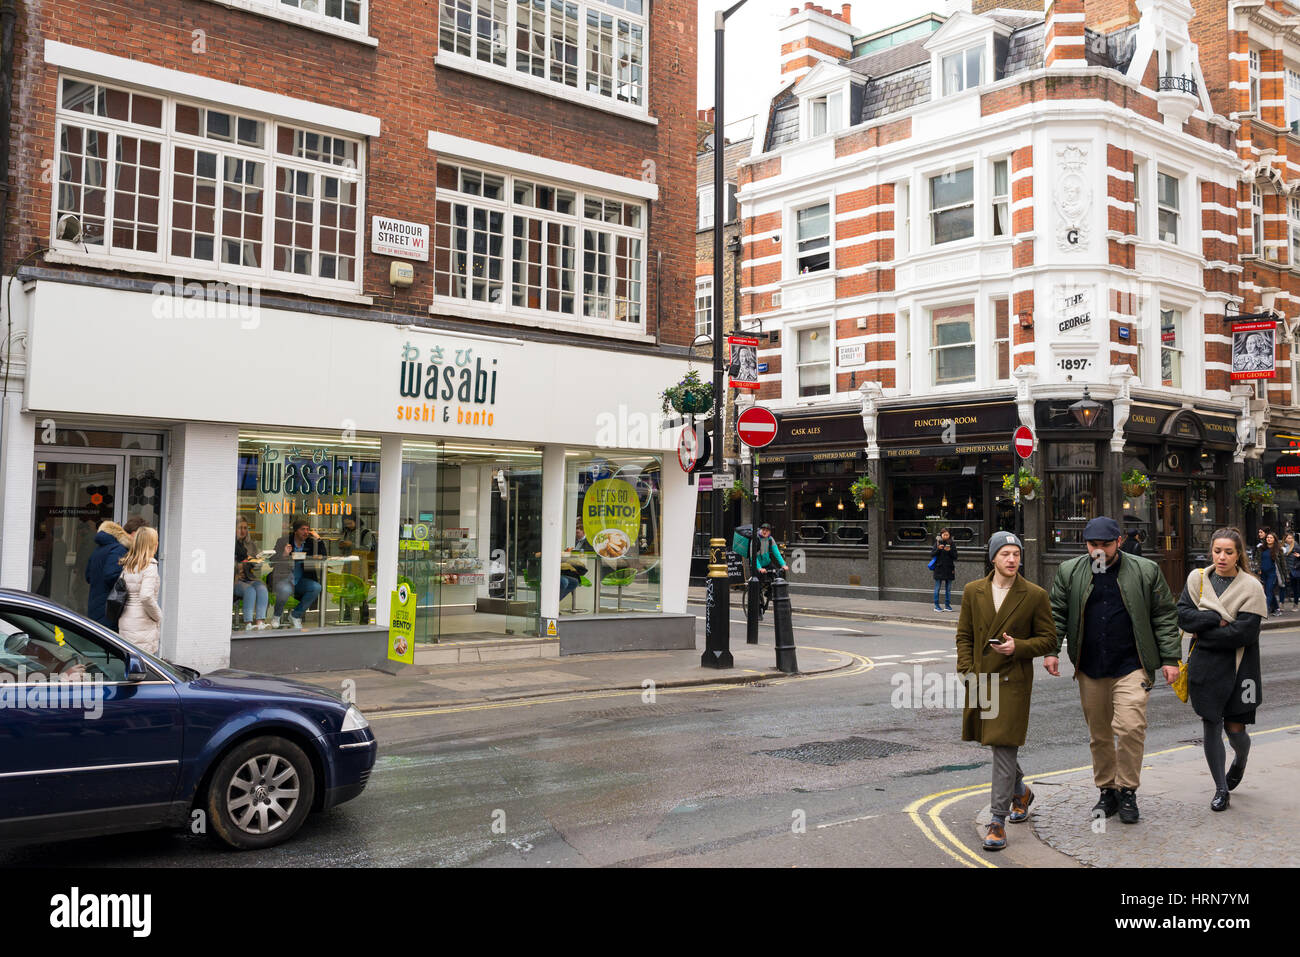 People walking in Wardour street, Soho in front of a local branch of the Japanese restaurant Wasabi. London, UK - Stock Image